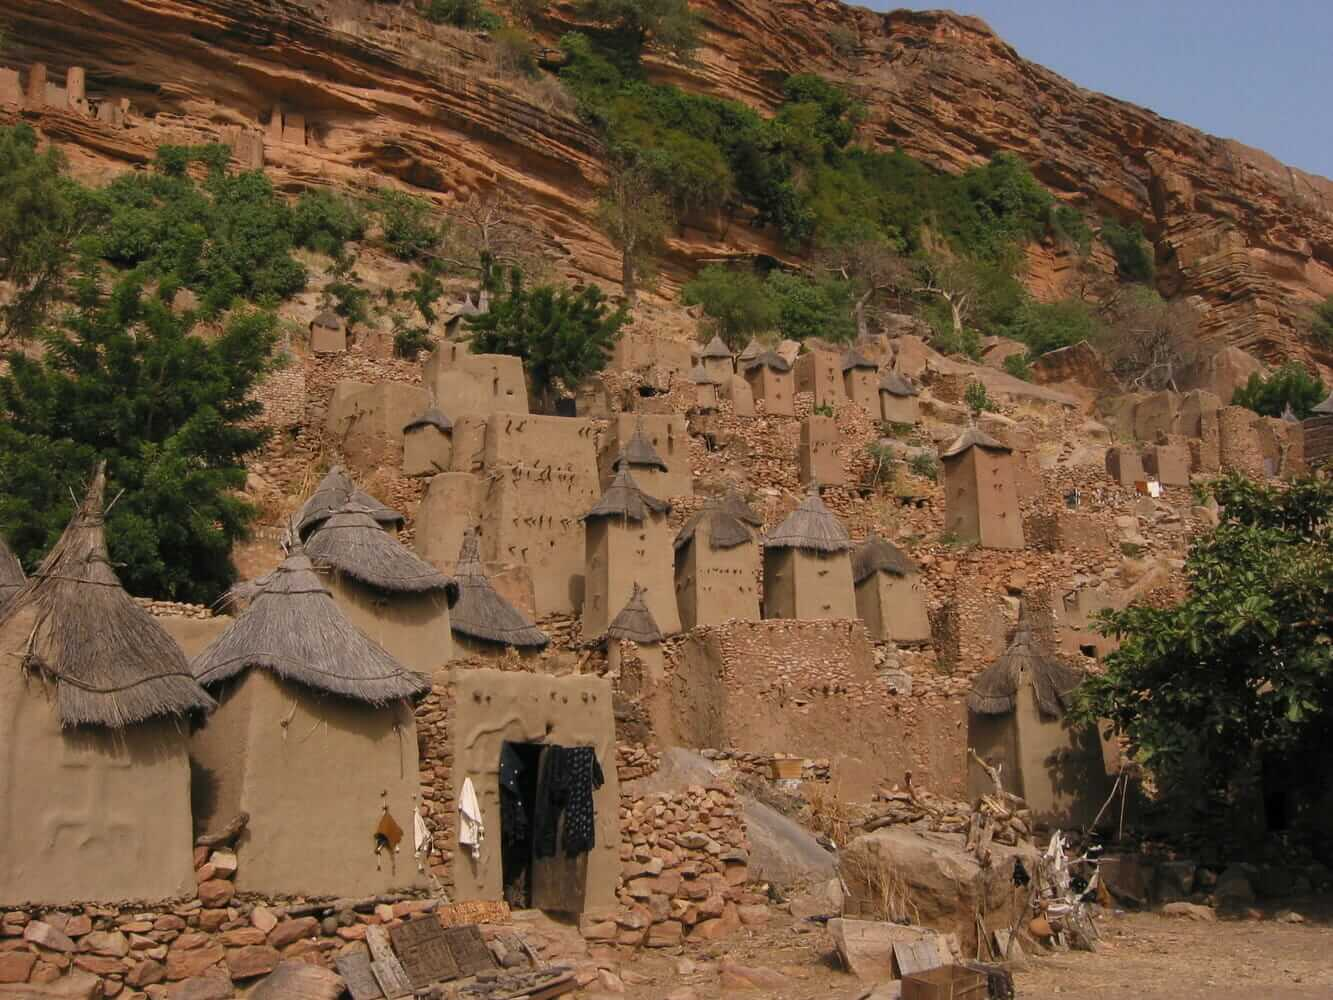 Dogon structures on the cliff of Bandiagara, Mali.